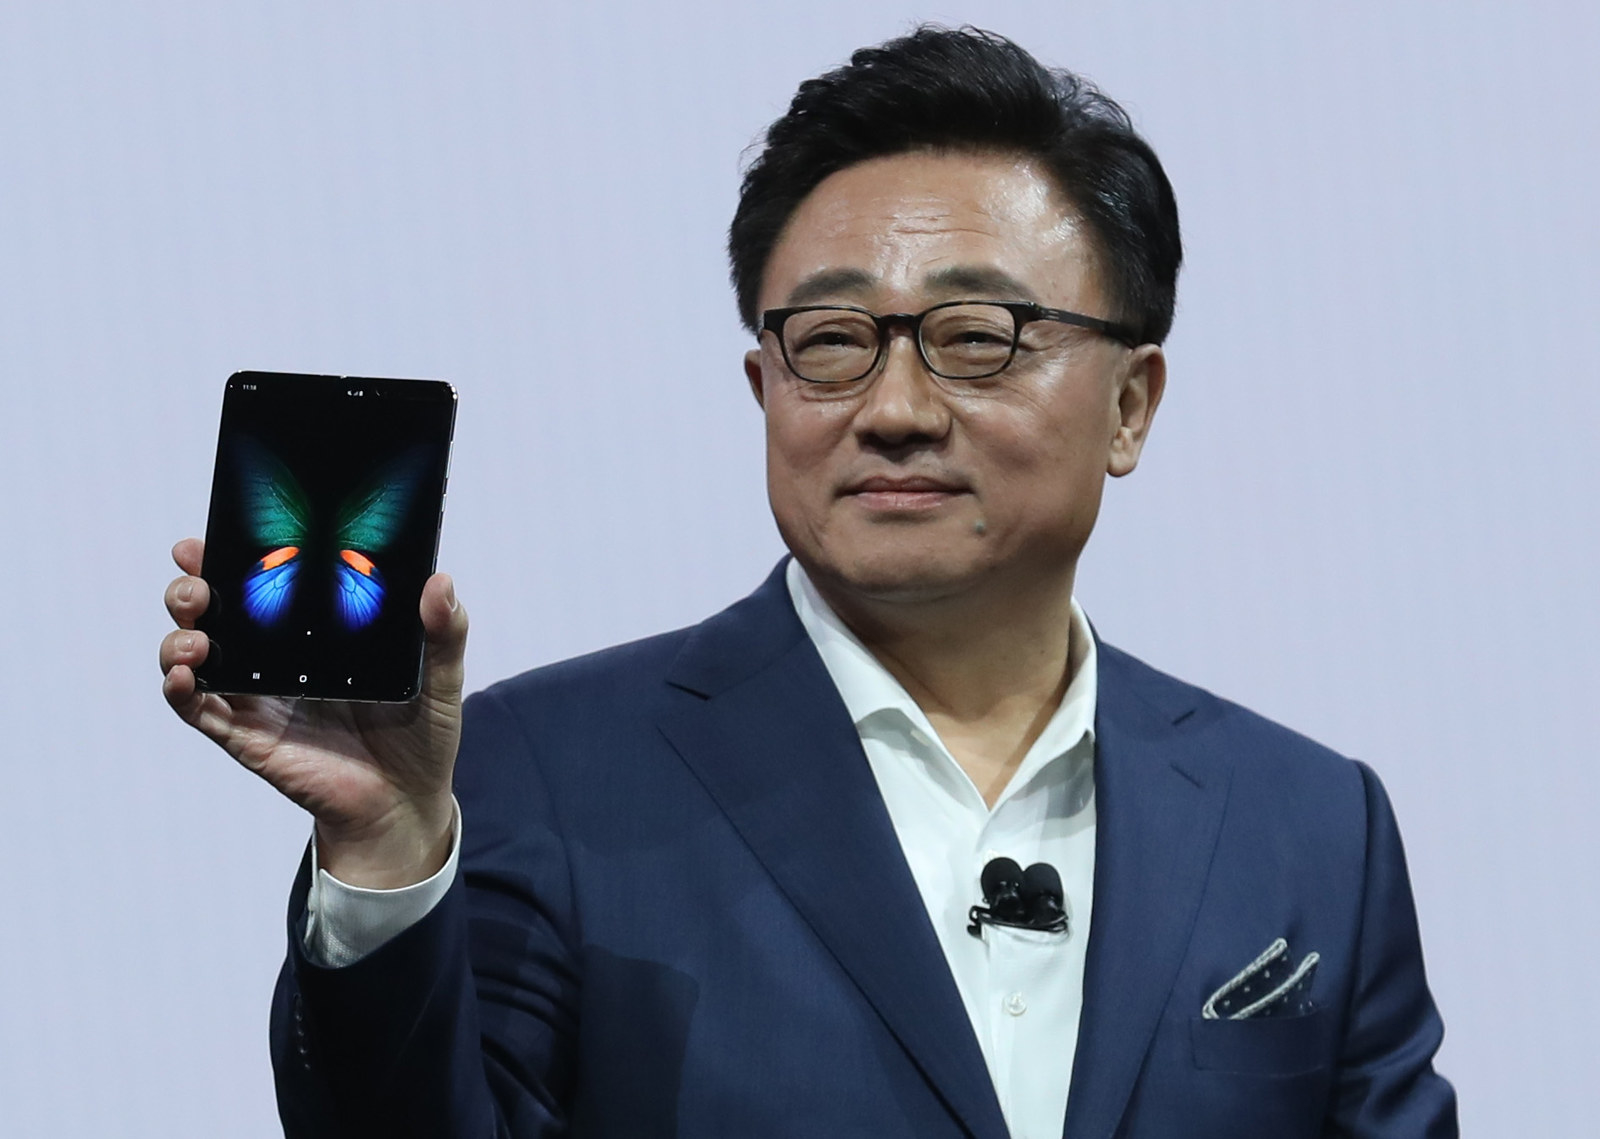 The Samsung Galaxy Fold Phone's Launch Has Been Delayed Because Of Screen Failures